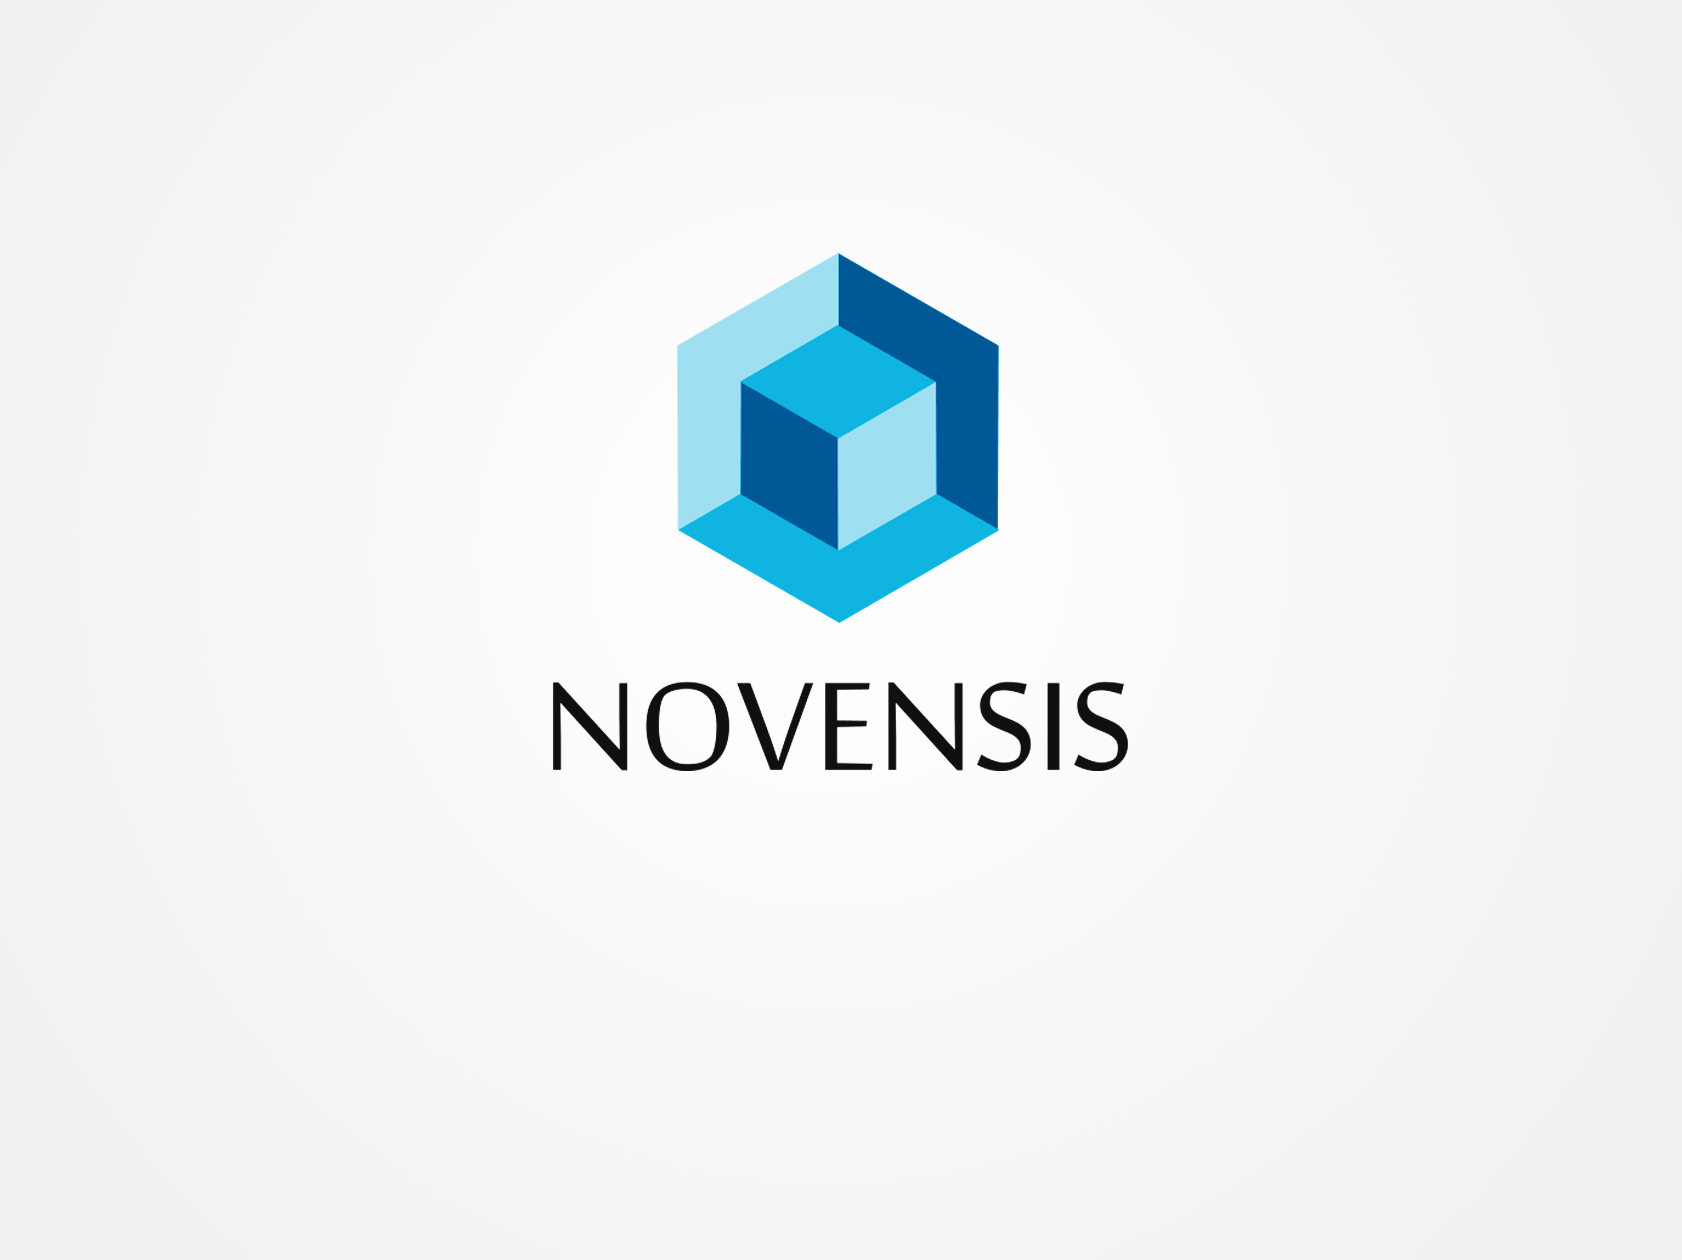 Logo Design by OmegaDesigns - Entry No. 122 in the Logo Design Contest Novensis Logo Design.